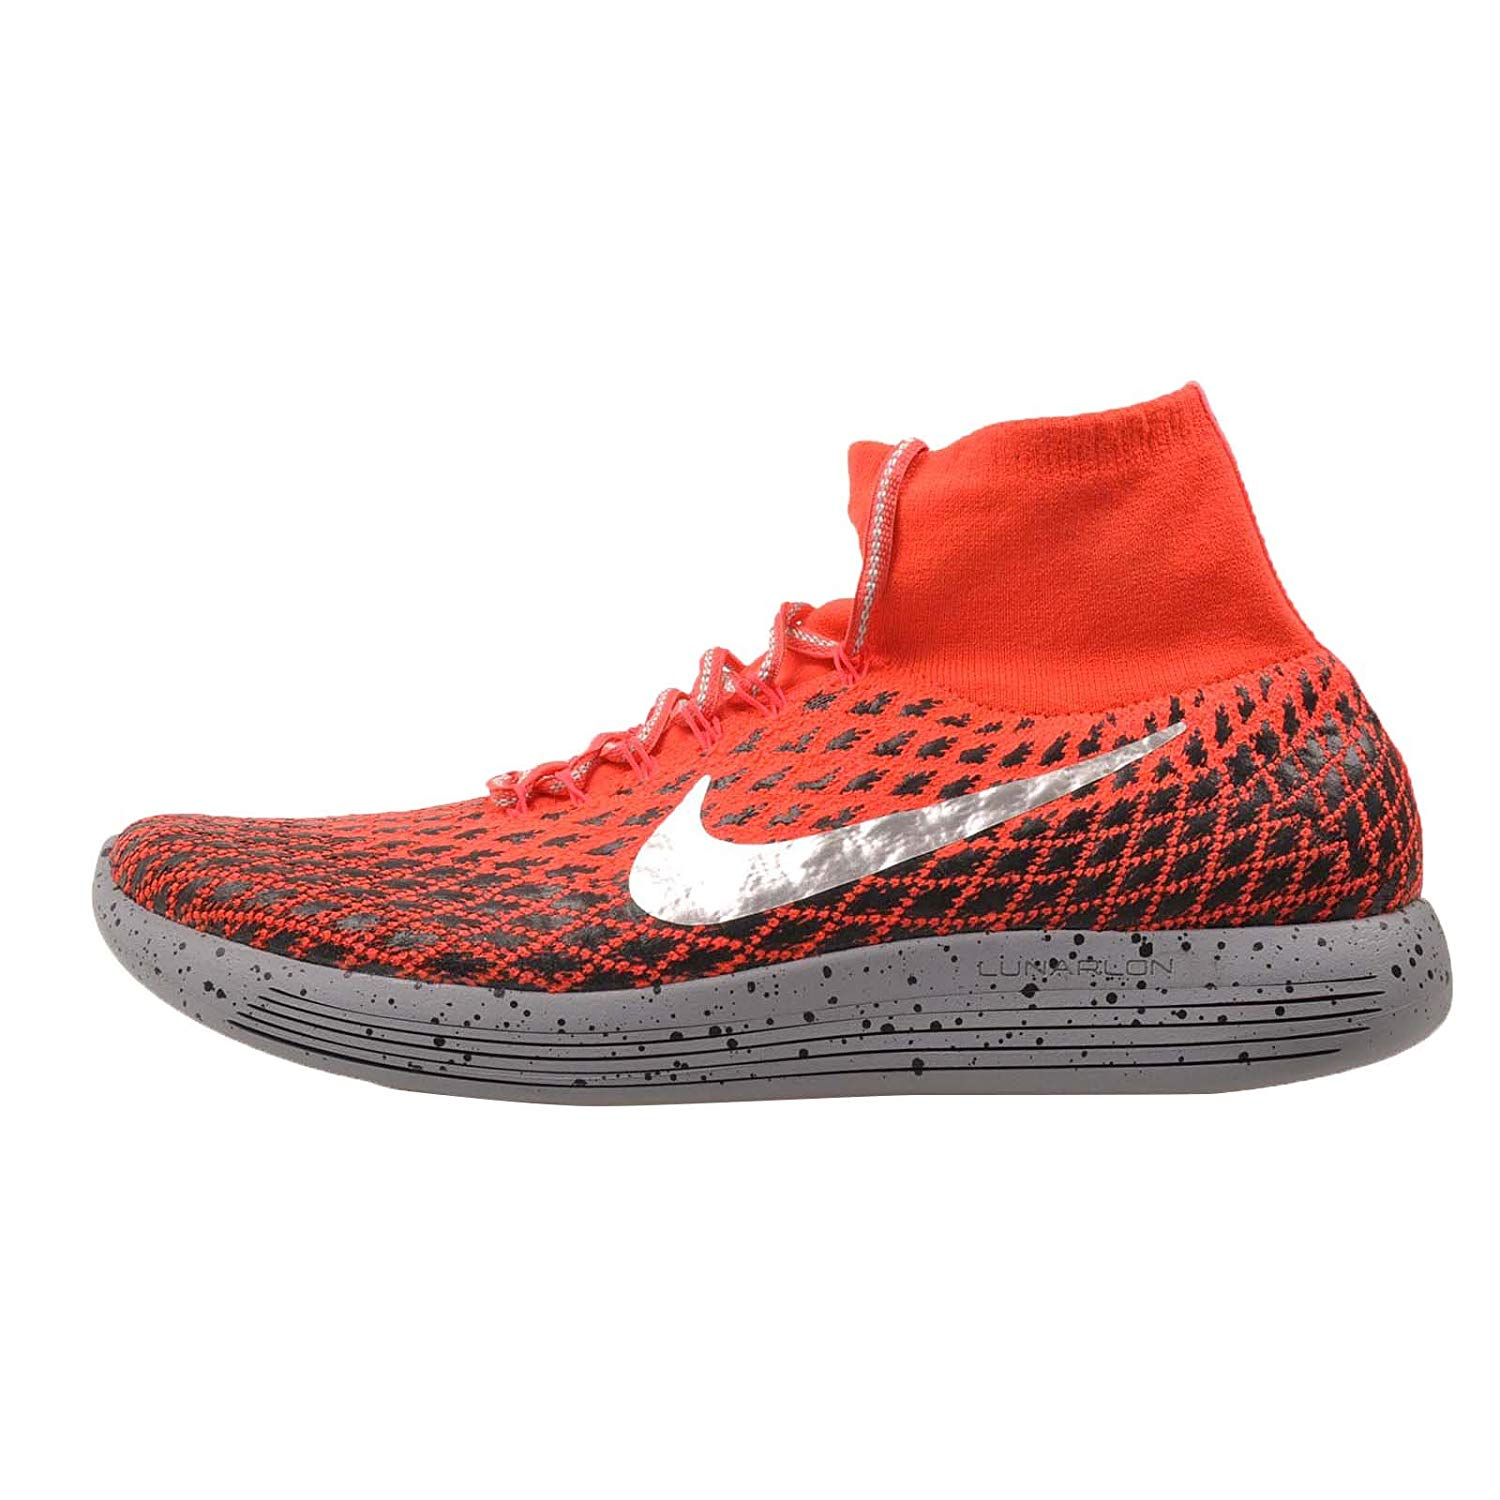 255f90dfd4c6 NIKE Men s Lunarepic Flyknit Shield